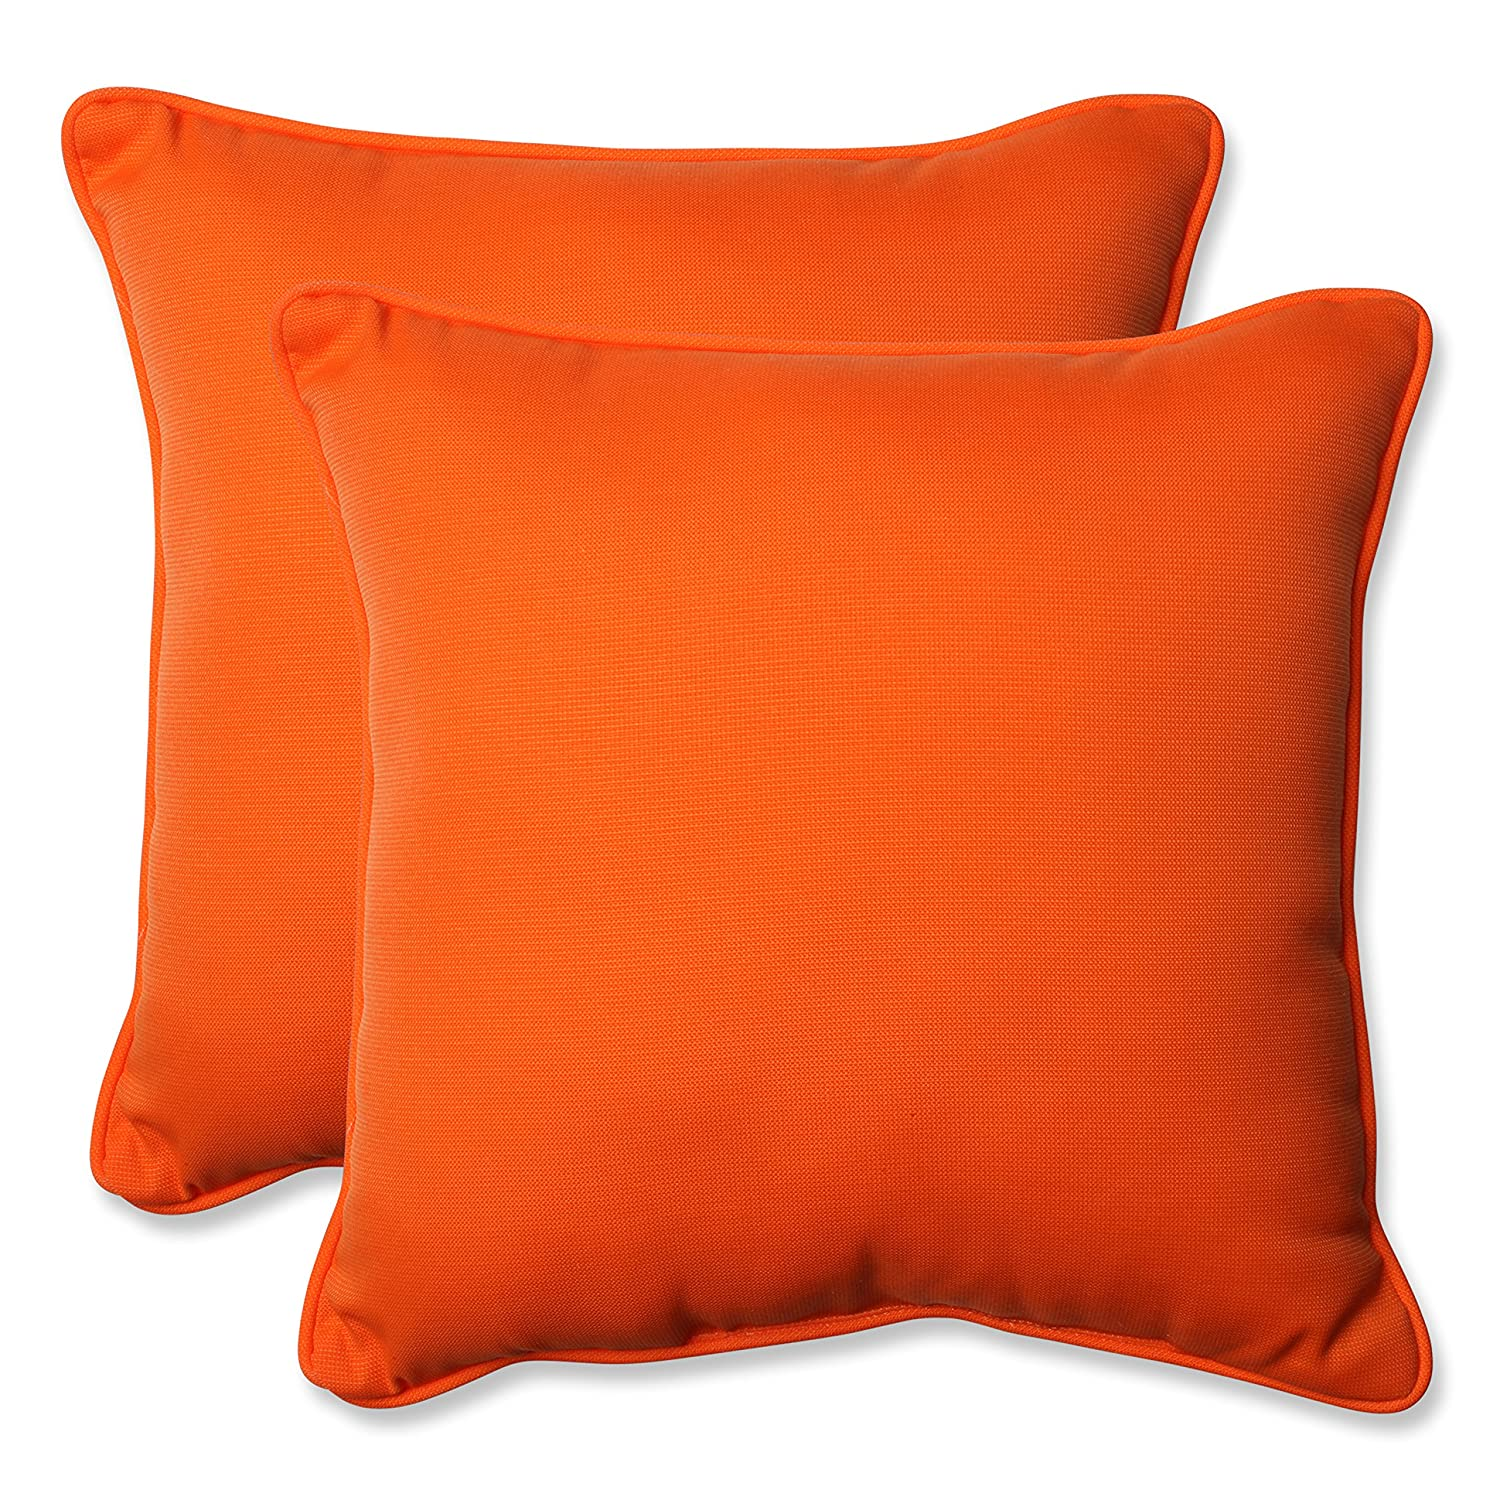 amazoncom pillow perfect indooroutdoor sundeck corded throw  - amazoncom pillow perfect indooroutdoor sundeck corded throw pillowinch orange set of  home  kitchen